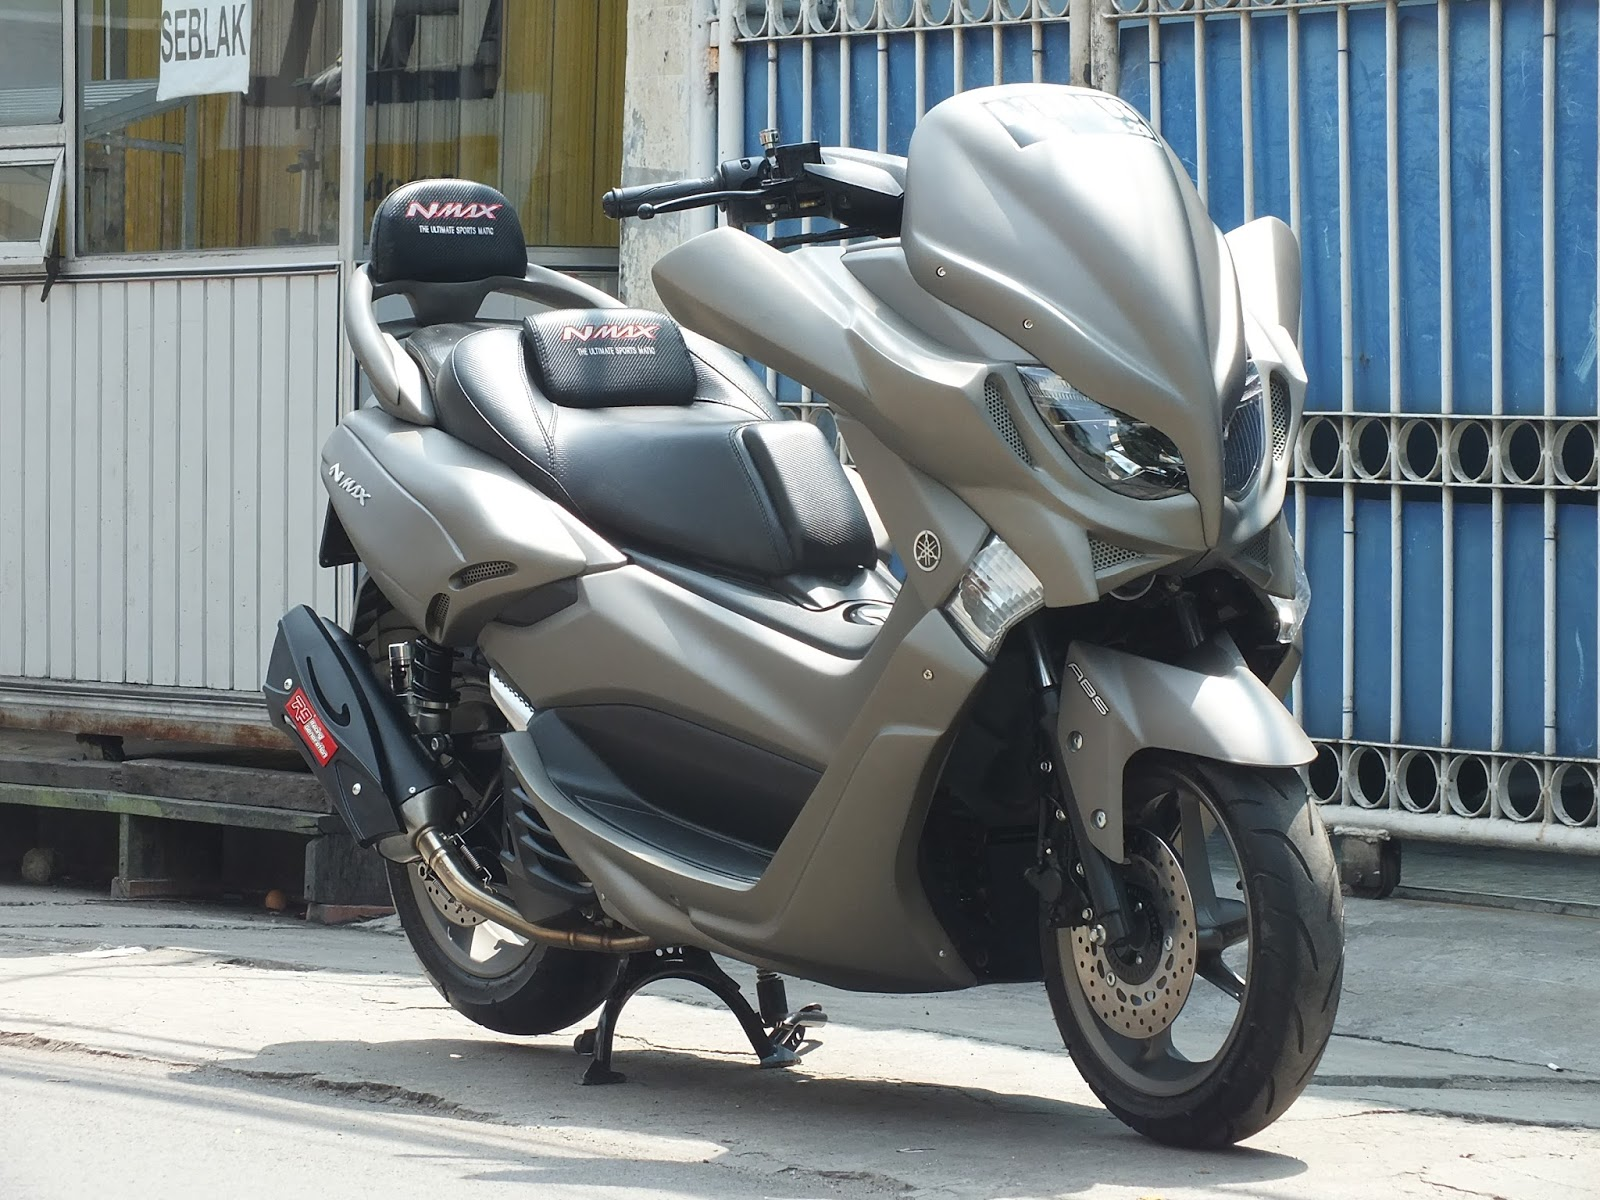 ngecat motor yamaha nmax custom paint gun metal doff pesanan mr ari cikeas. Black Bedroom Furniture Sets. Home Design Ideas